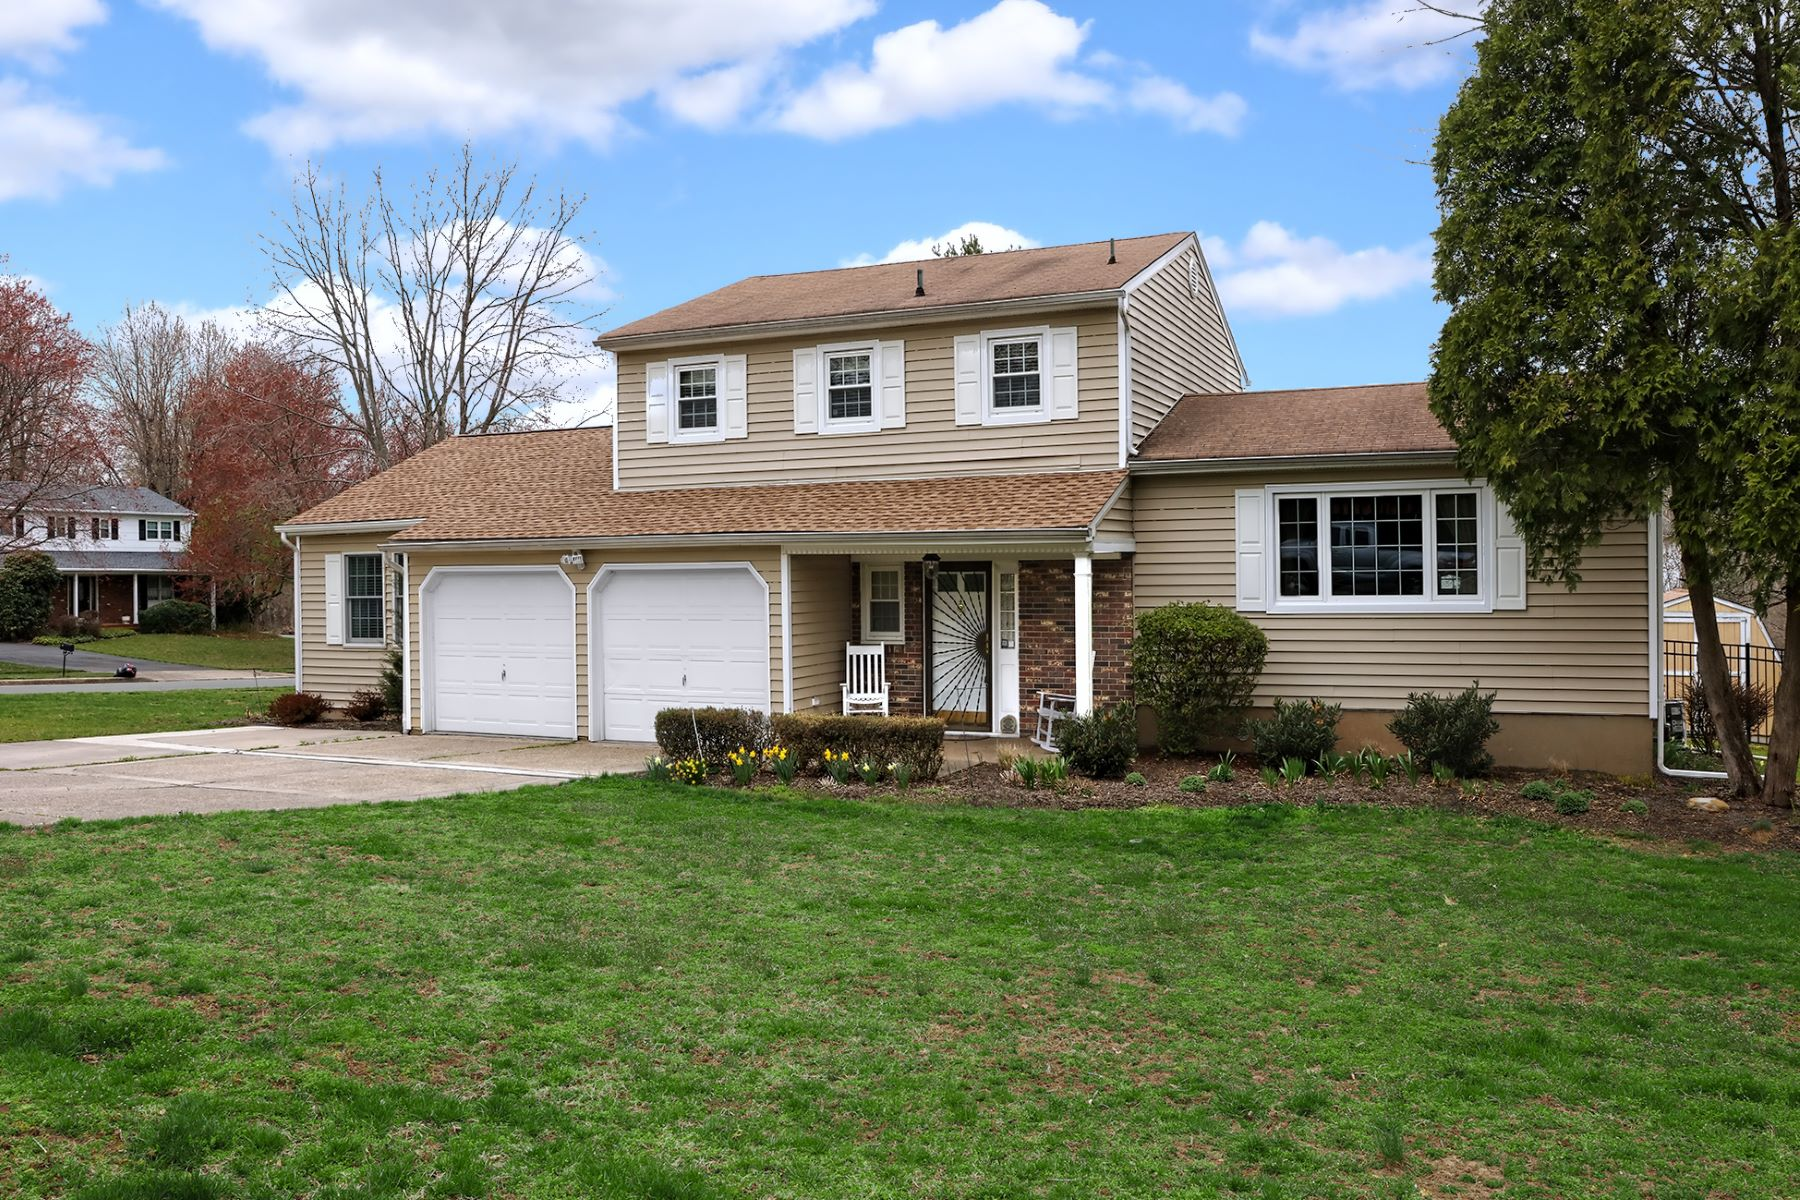 Single Family Home for Sale at Prepare To Be Impressed 2 Randi Way, Titusville, New Jersey 08560 United States